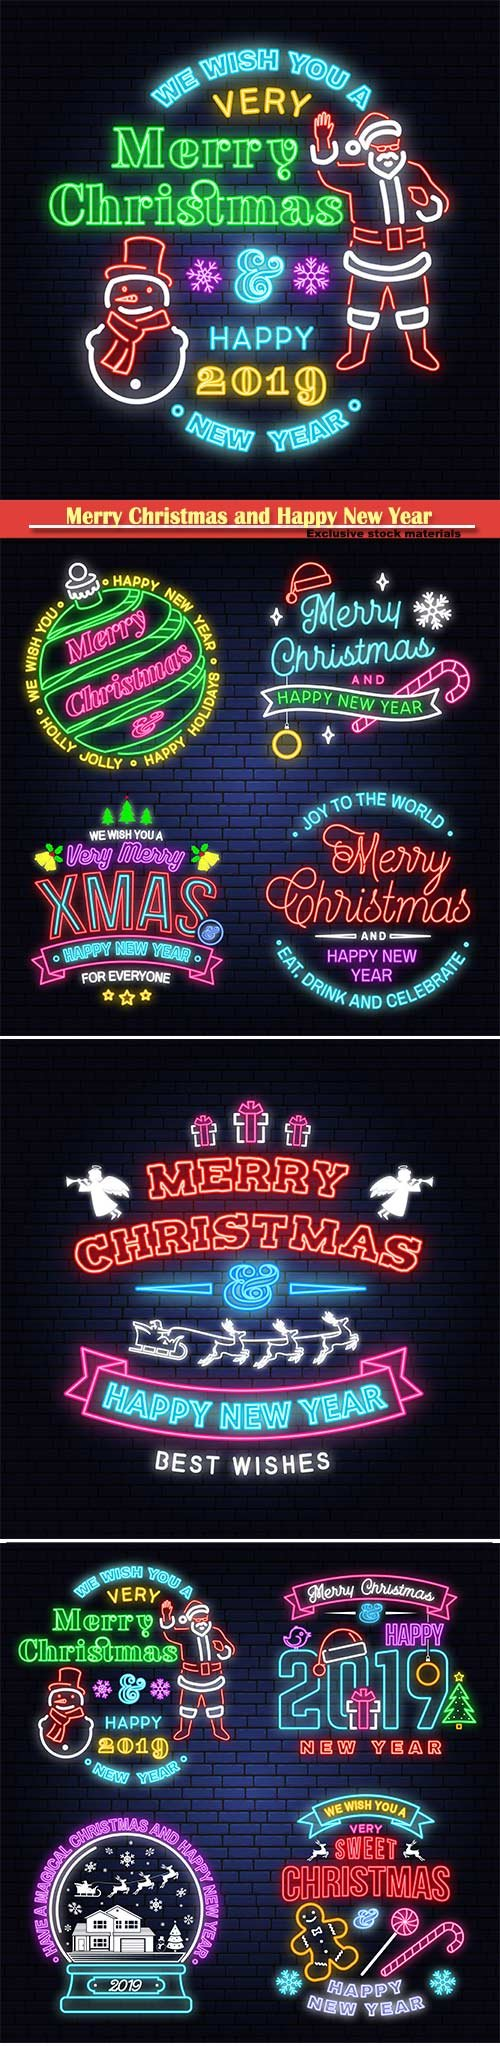 Merry Christmas and Happy New Year neon vector sign